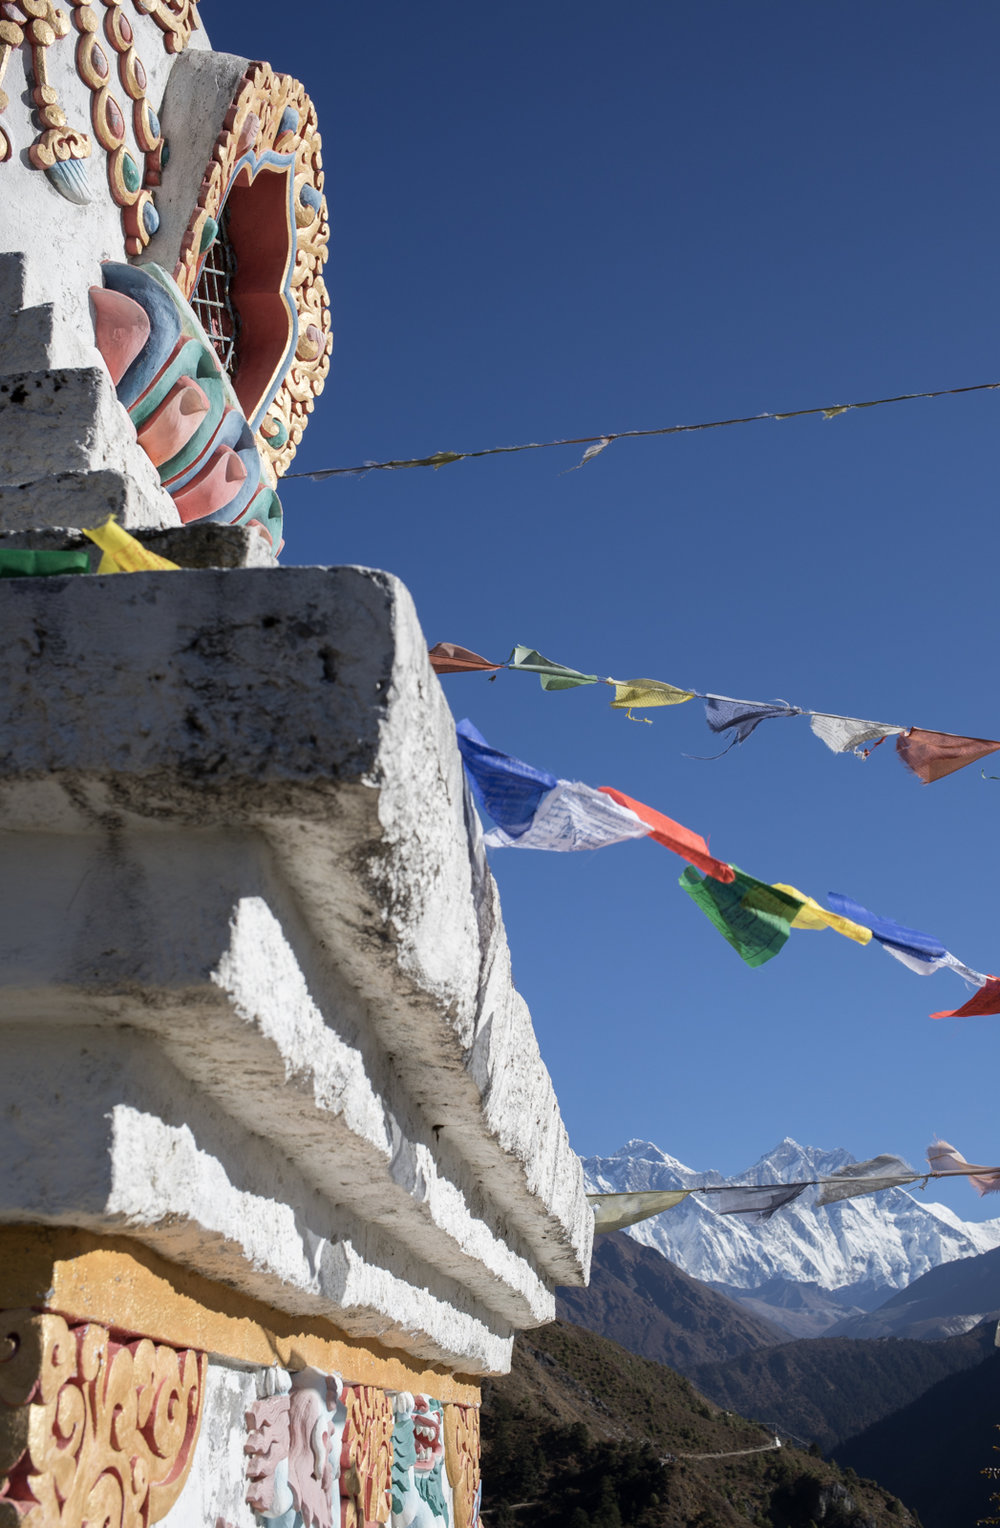 A view of the mountains around a carves stupa.